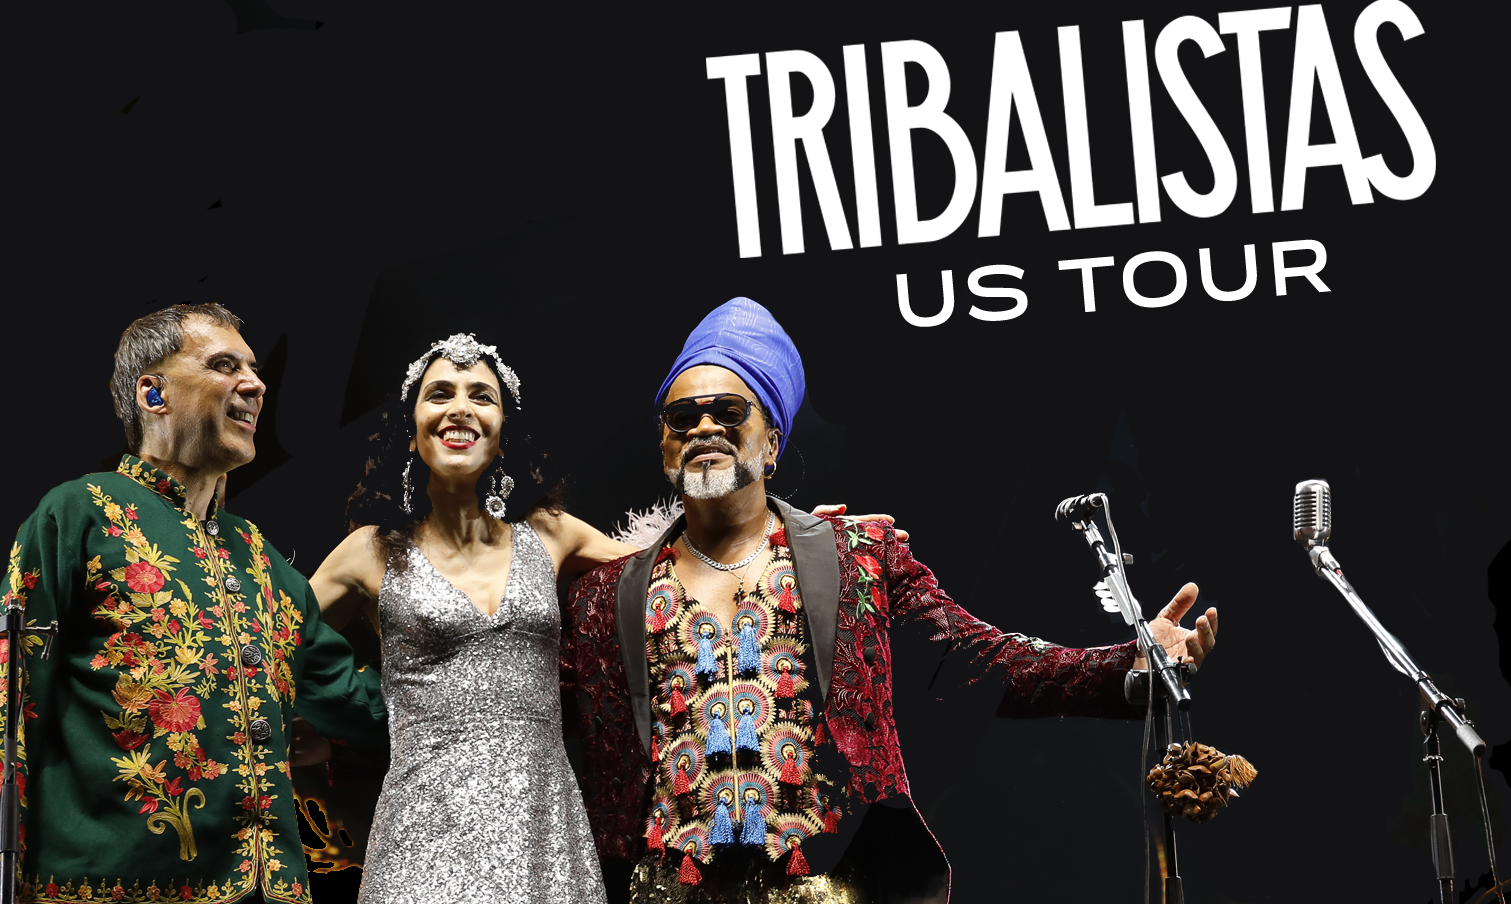 JUST ANNOUNCED: Tribalistas U.S. Tour